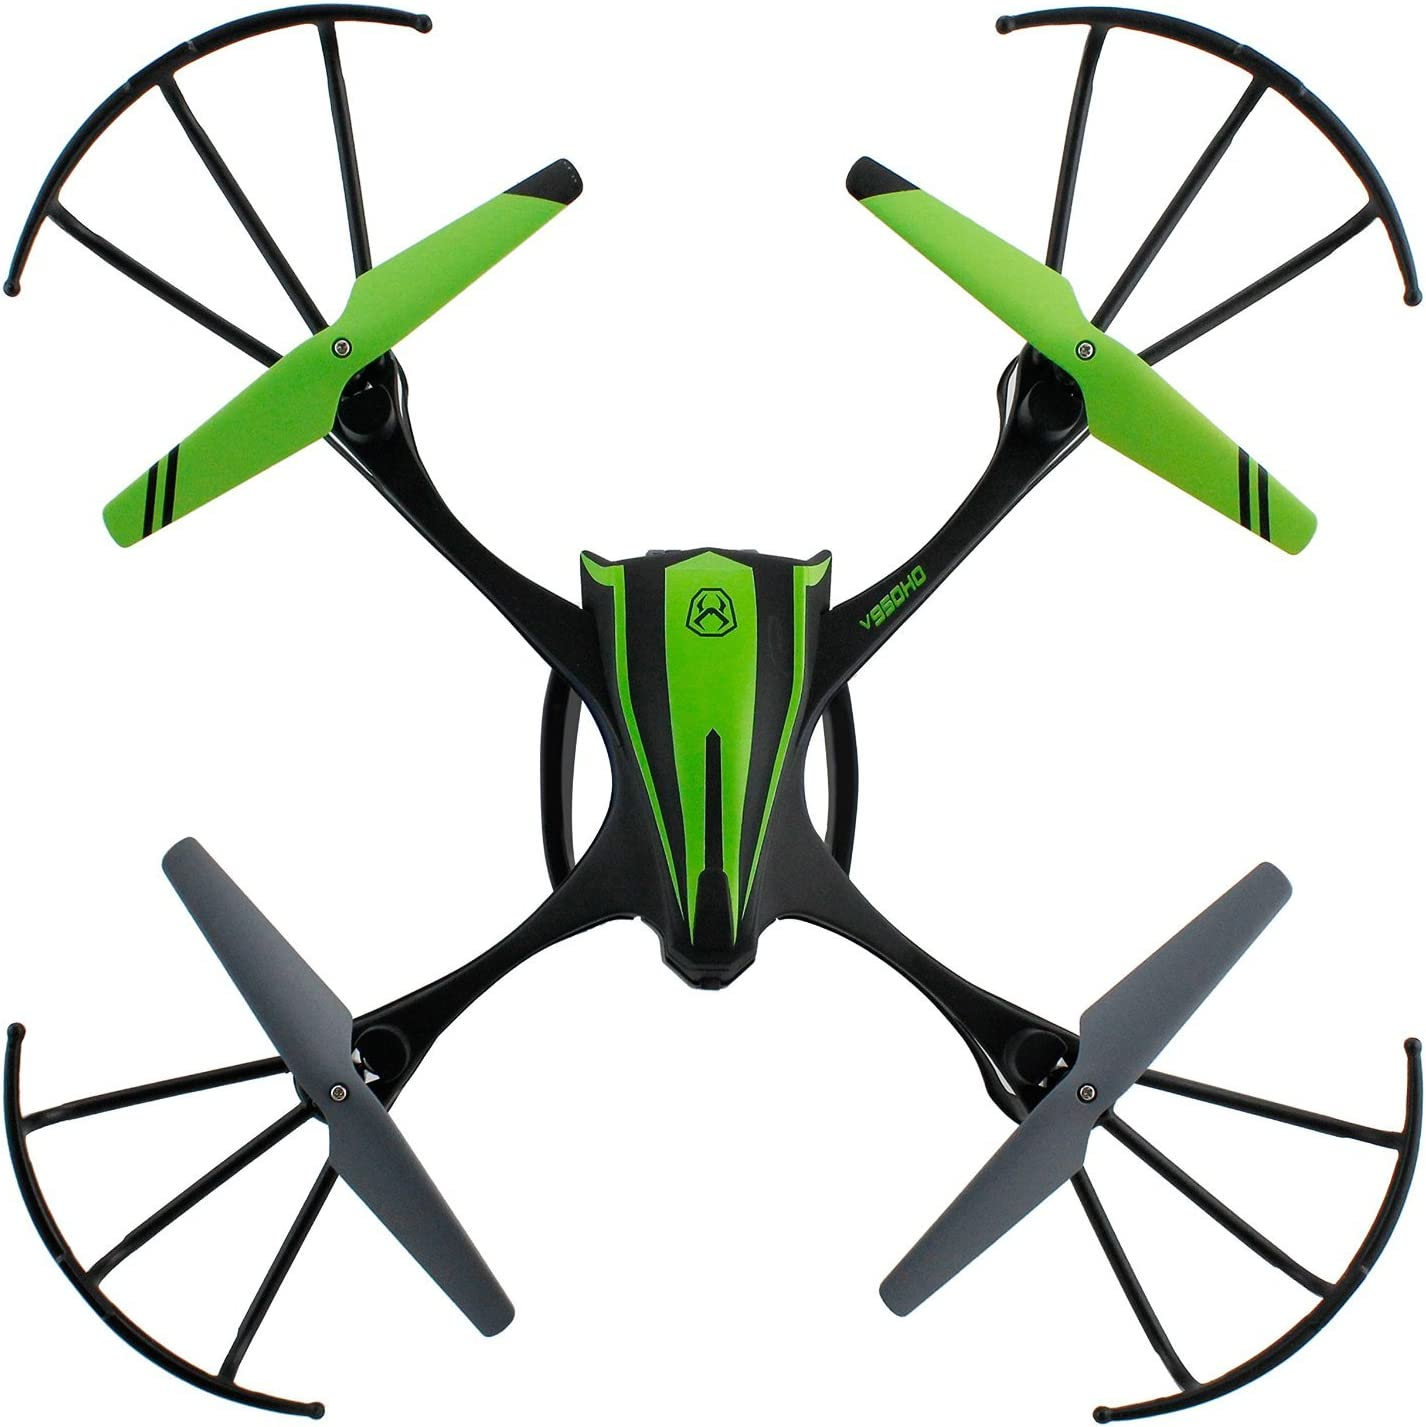 Sky Viper Video Drone V950HD is at # 3 for best drone for teenager and young kids